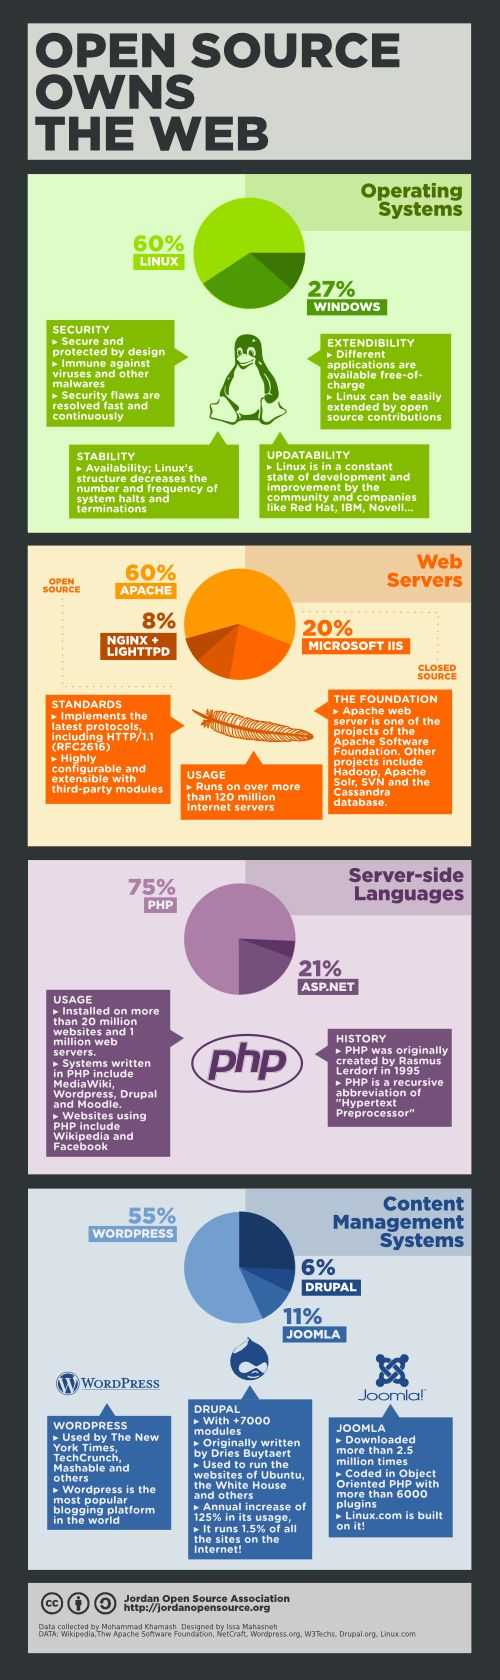 Open Source Owns the Web. #infografia #infographic #Internet